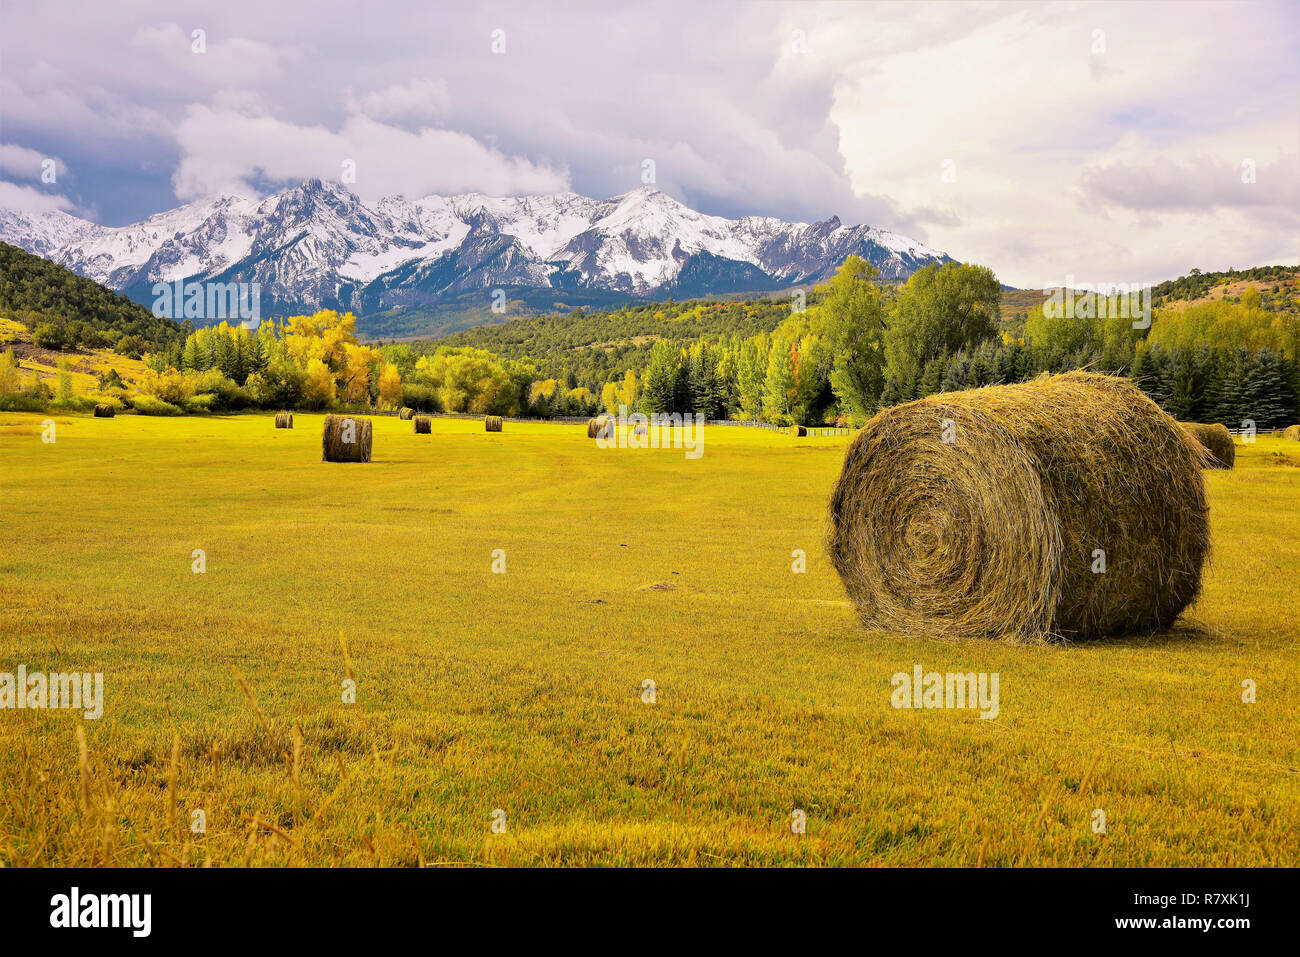 Mountain Valley And Hay Rolls Stock Photo 228623070 Alamy